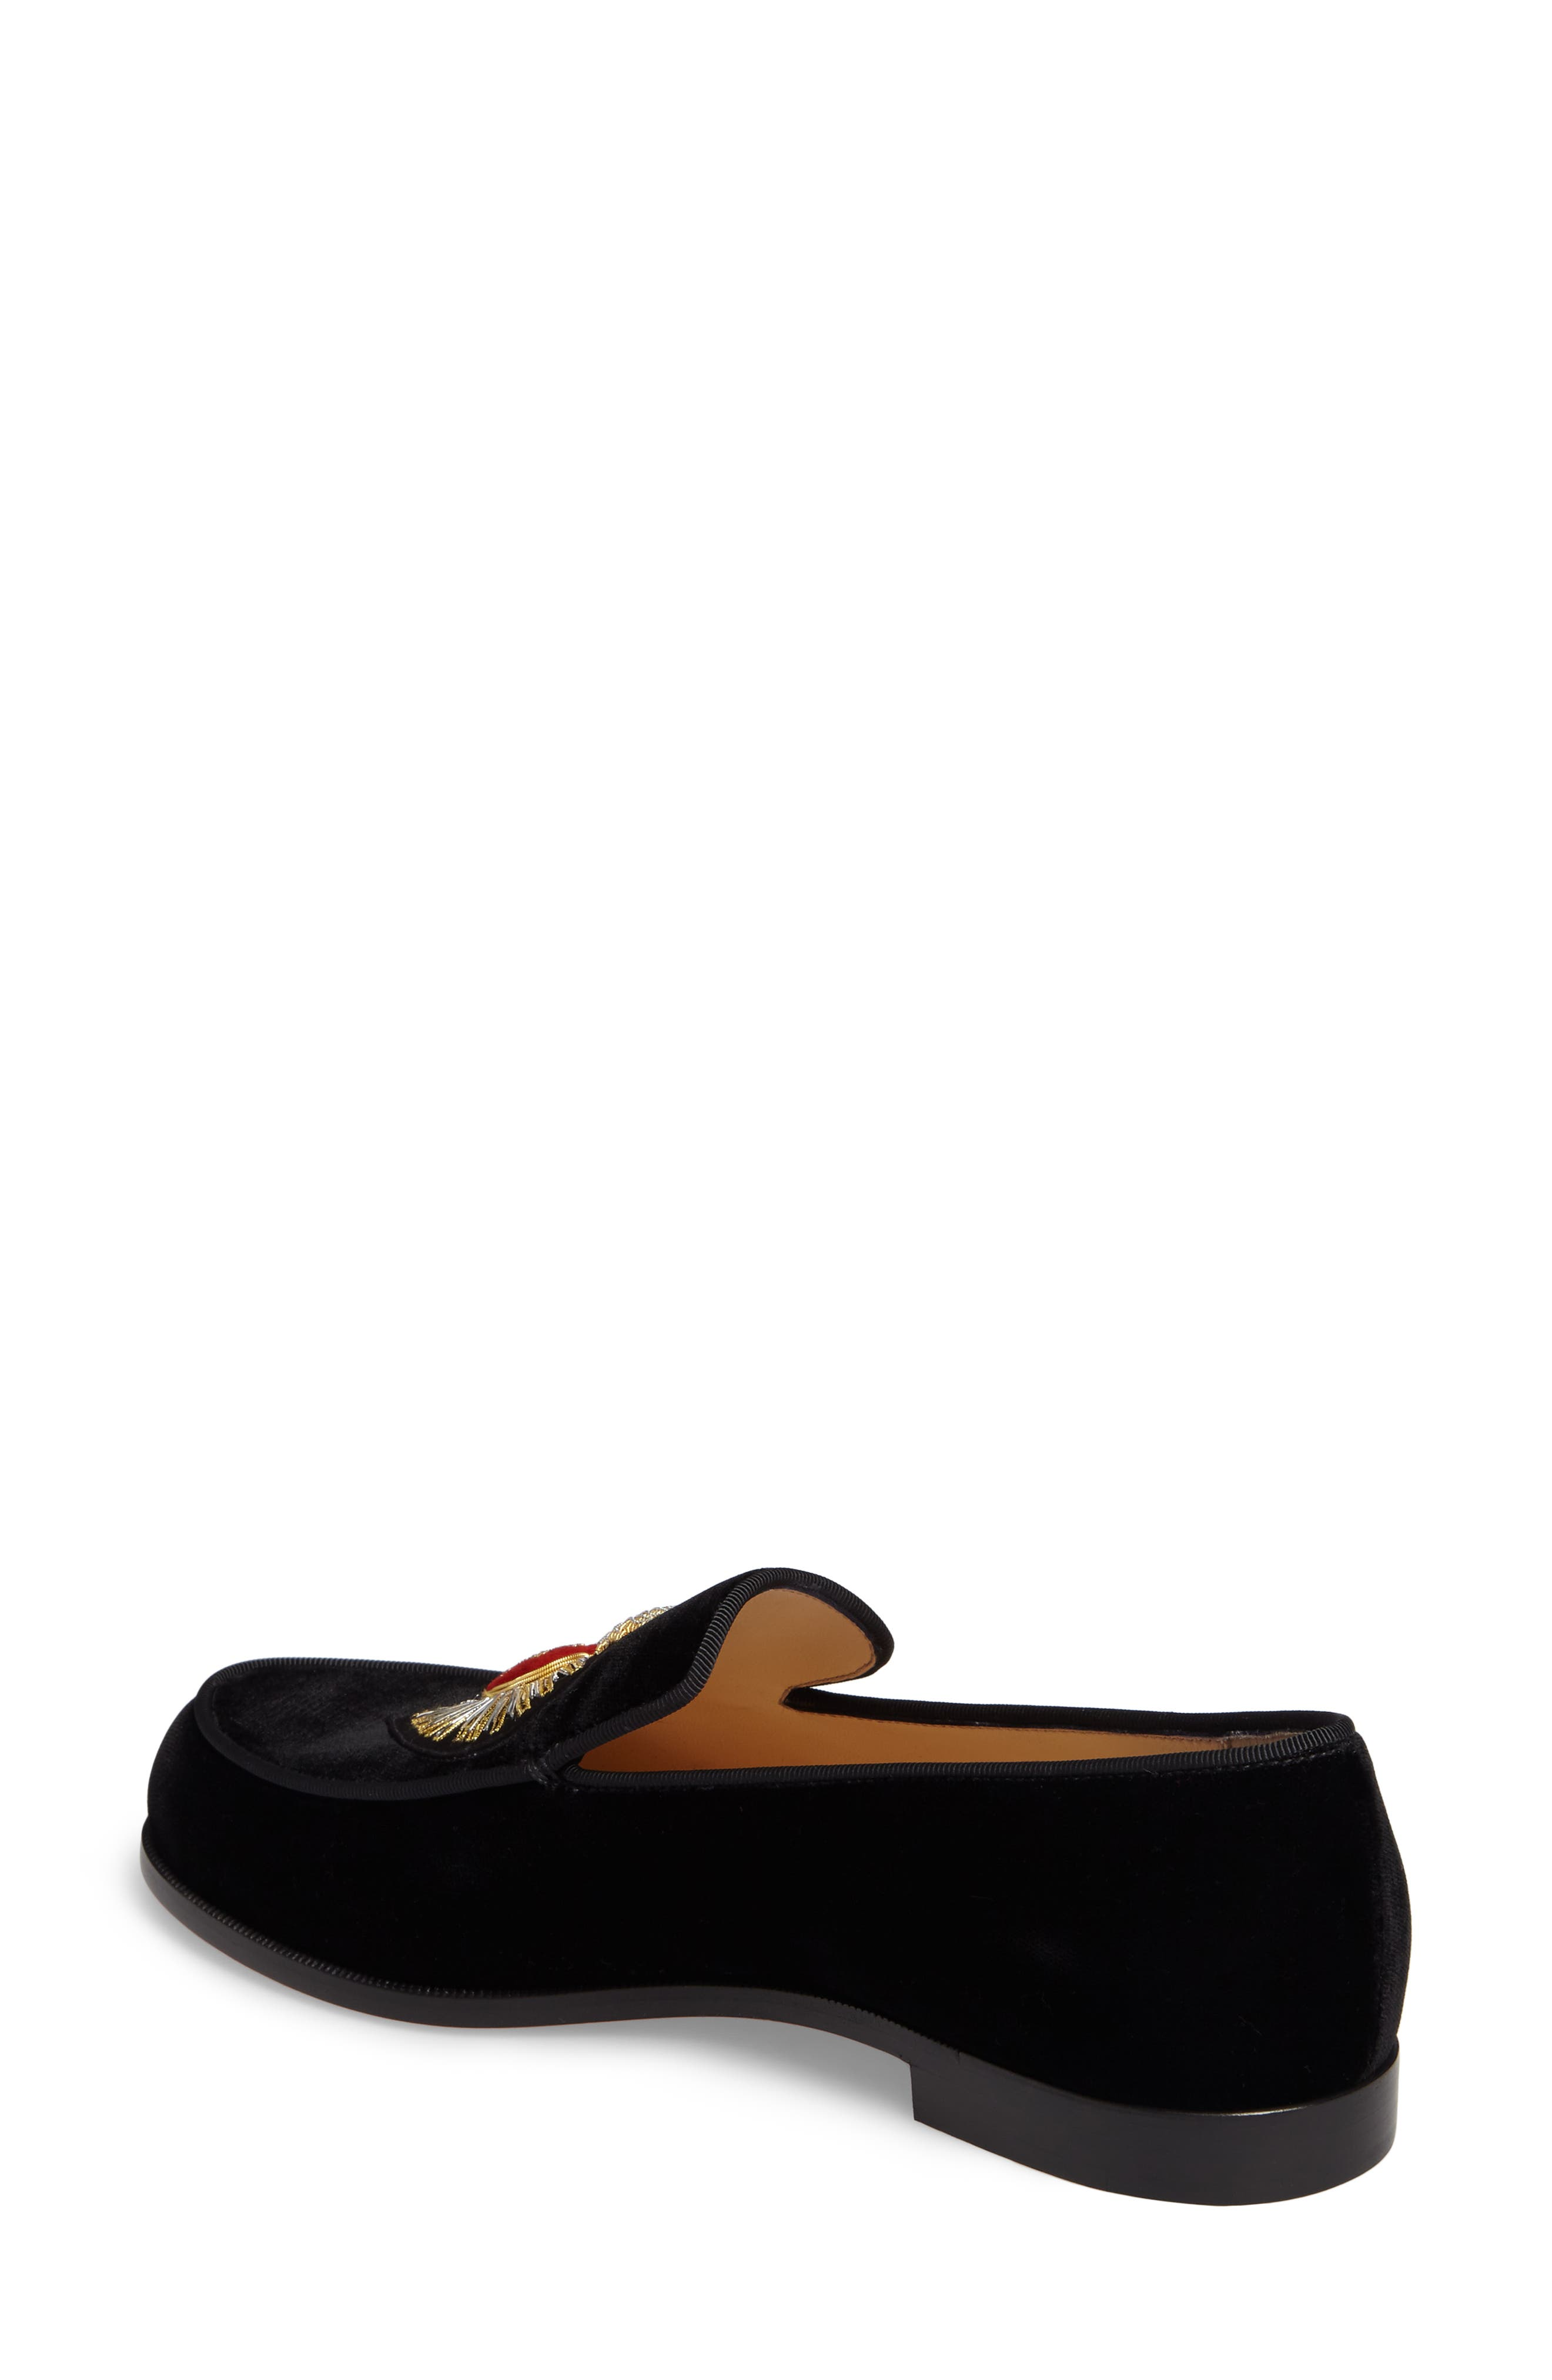 Perou Corazon Loafer,                             Alternate thumbnail 3, color,                             001